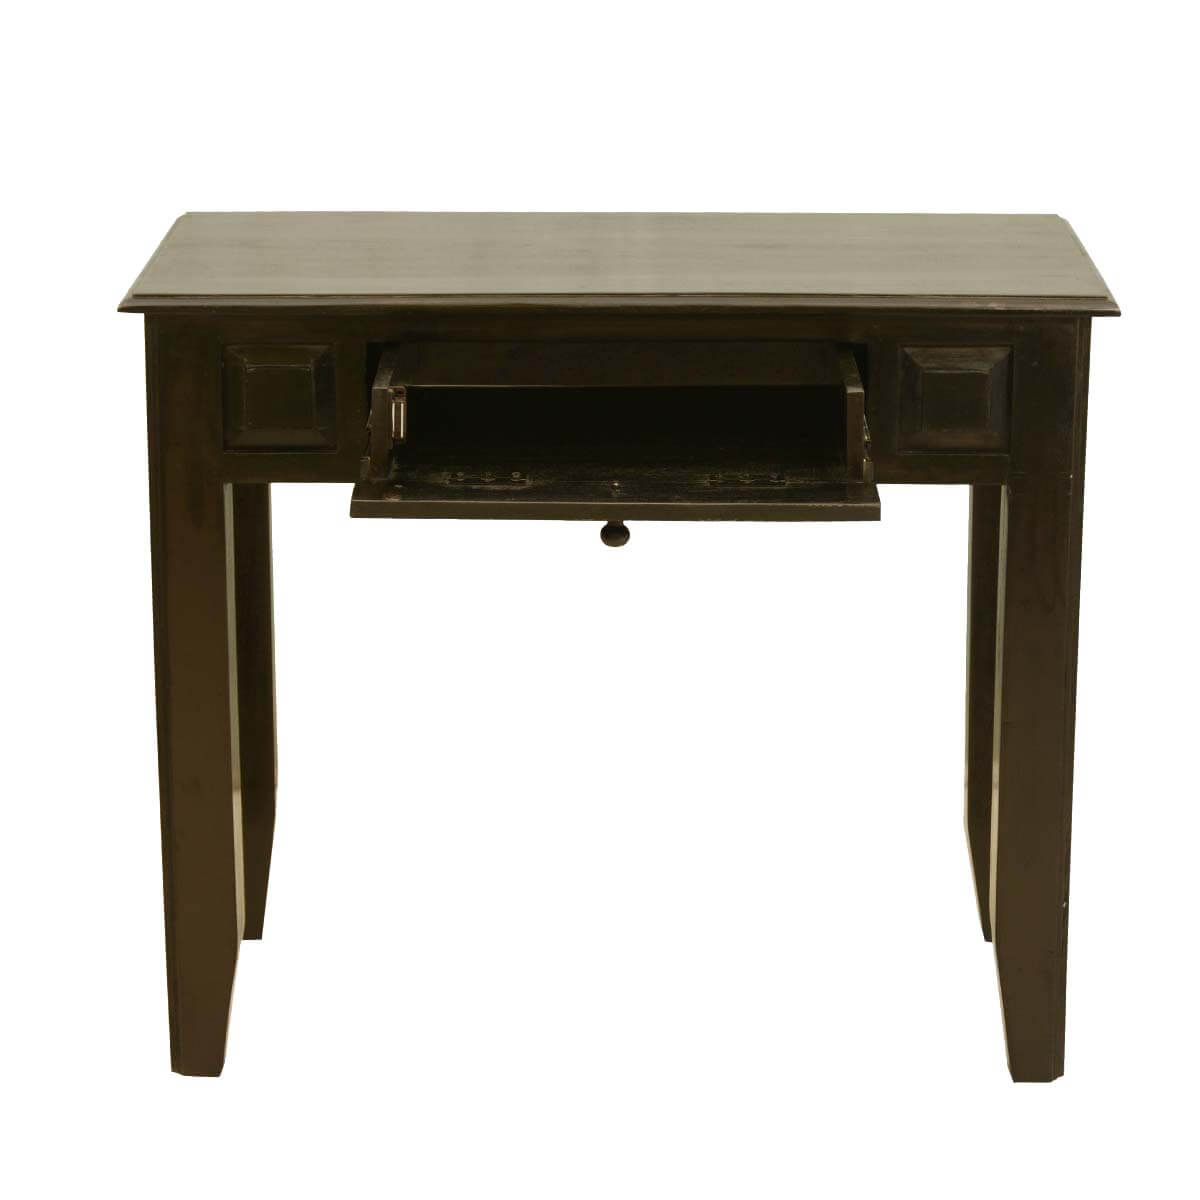 Marvelous photograph of  Consoles & Hall Tables Colonial Mango Wood Console Table Desk w Drawer with #B28C19 color and 1200x1200 pixels